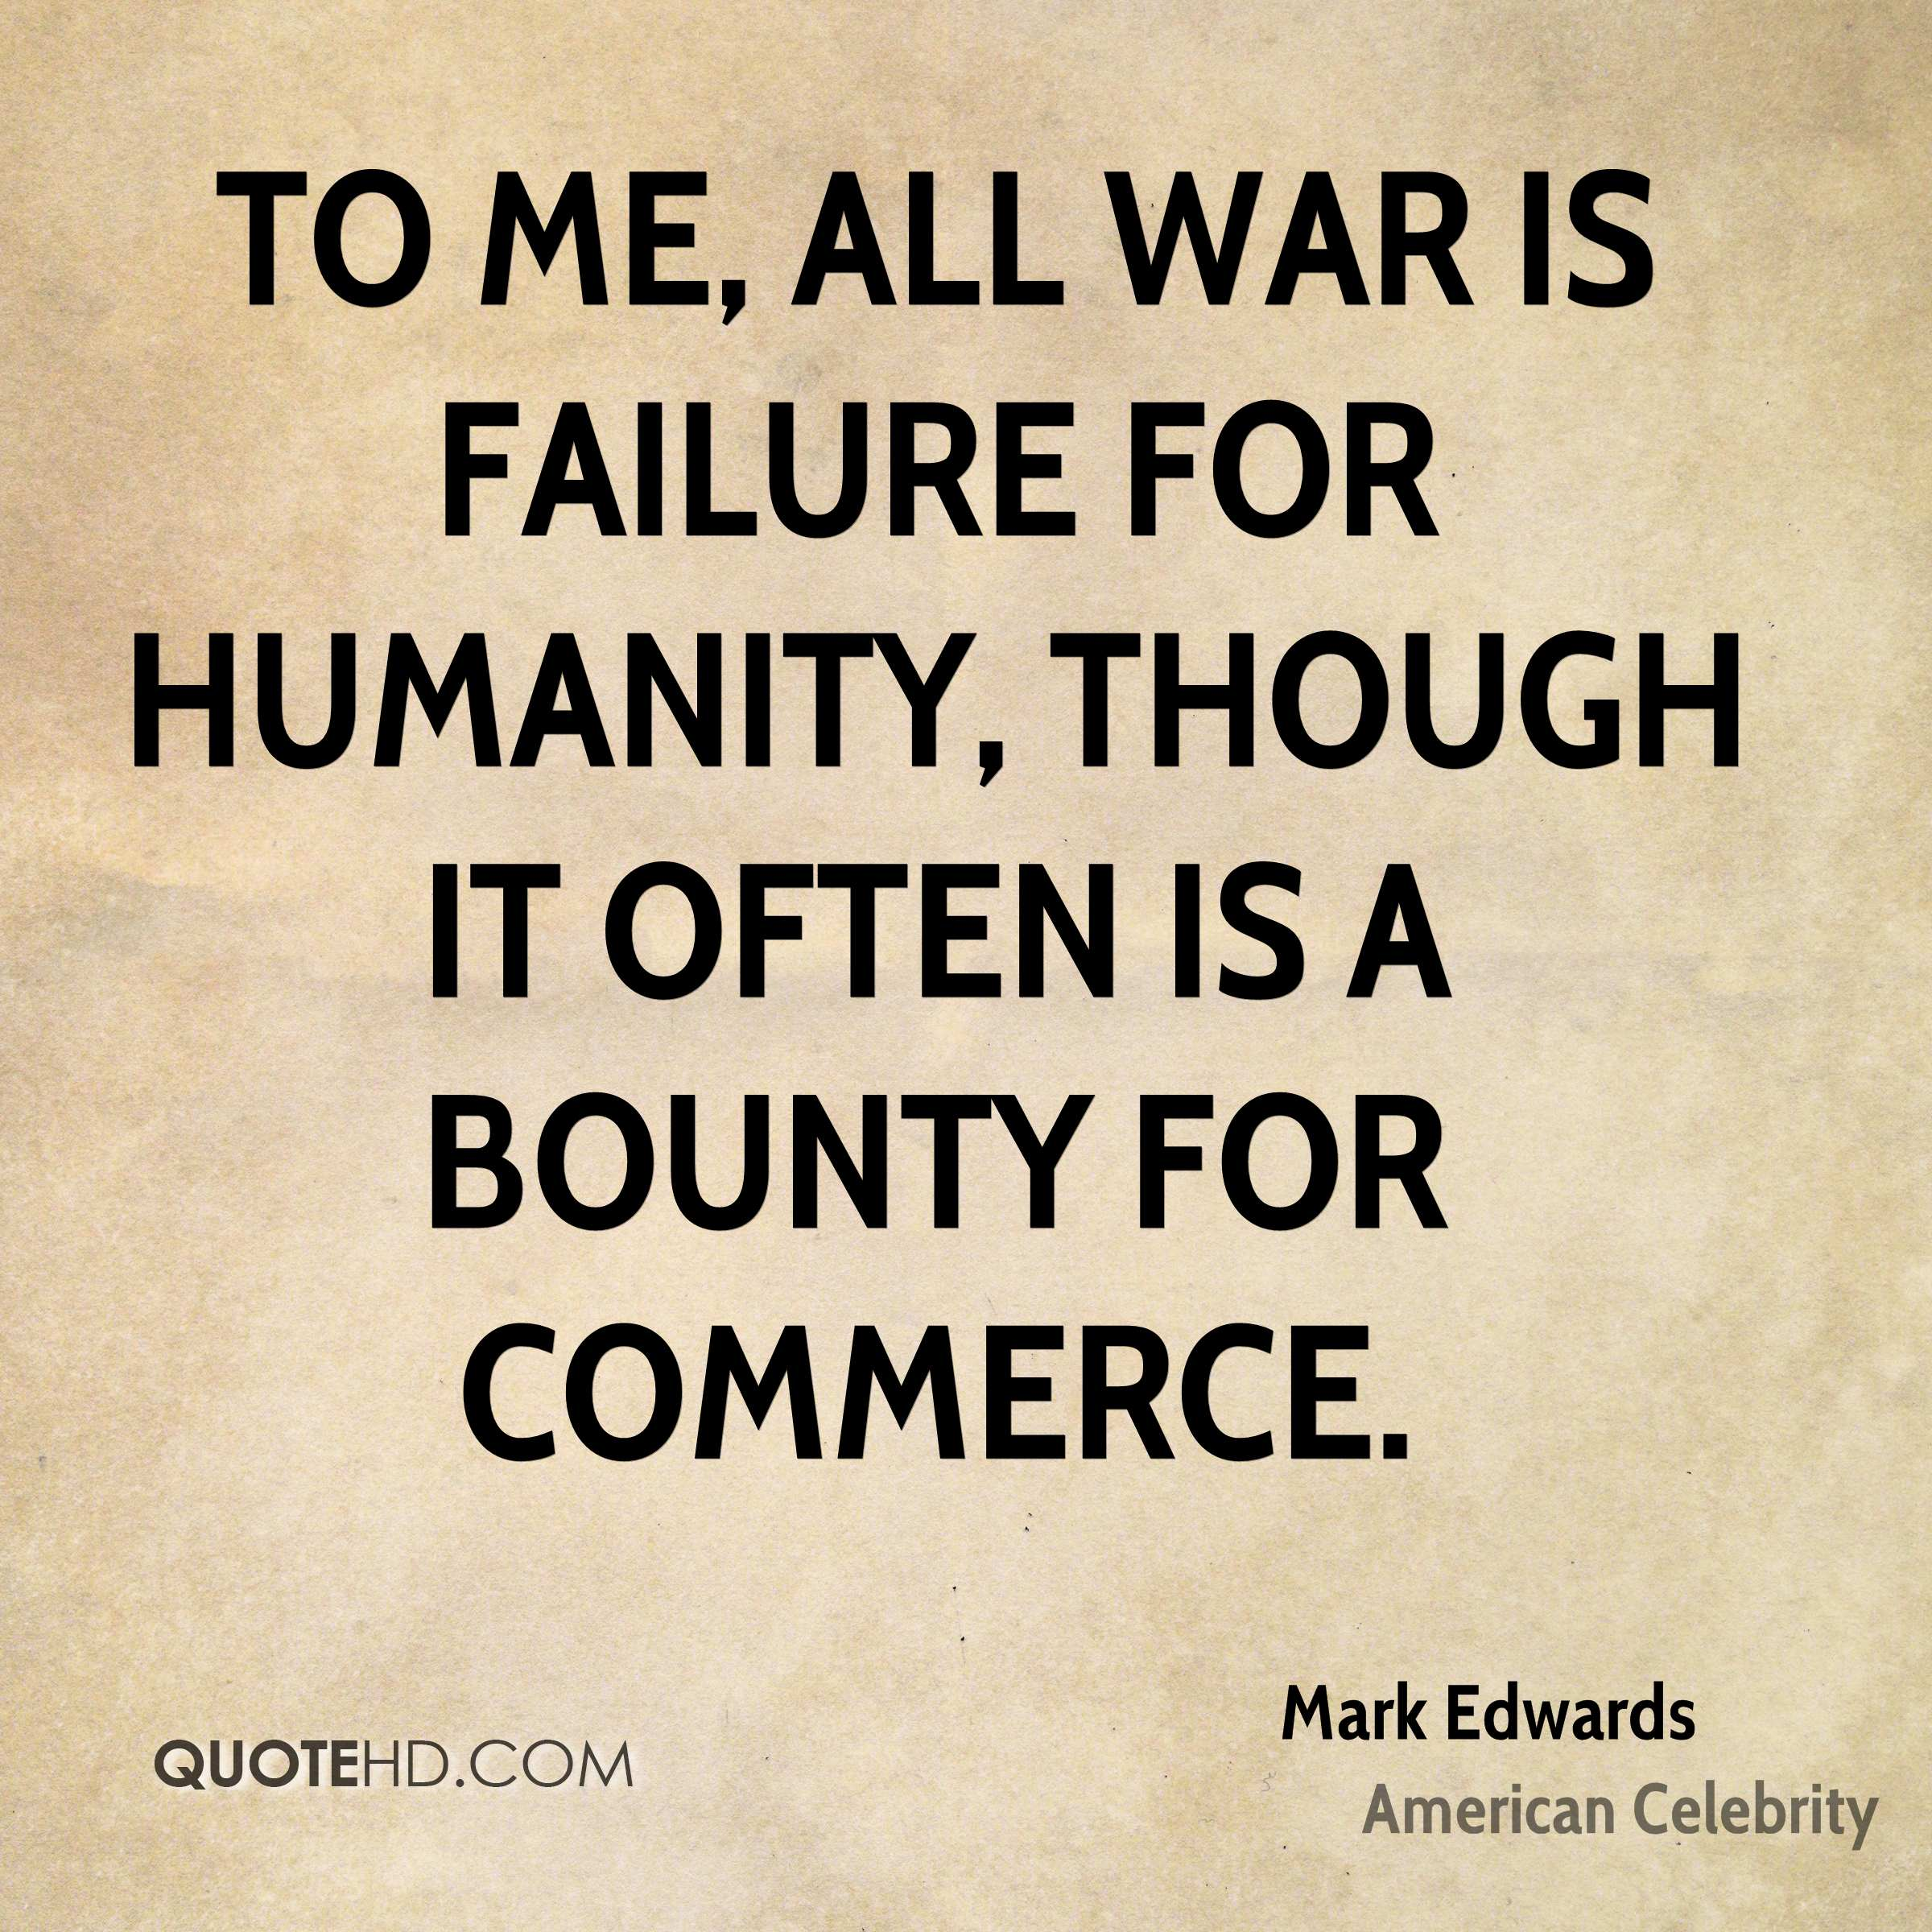 Quotes About Humanity Mark Edwards Quotes  Quotehd